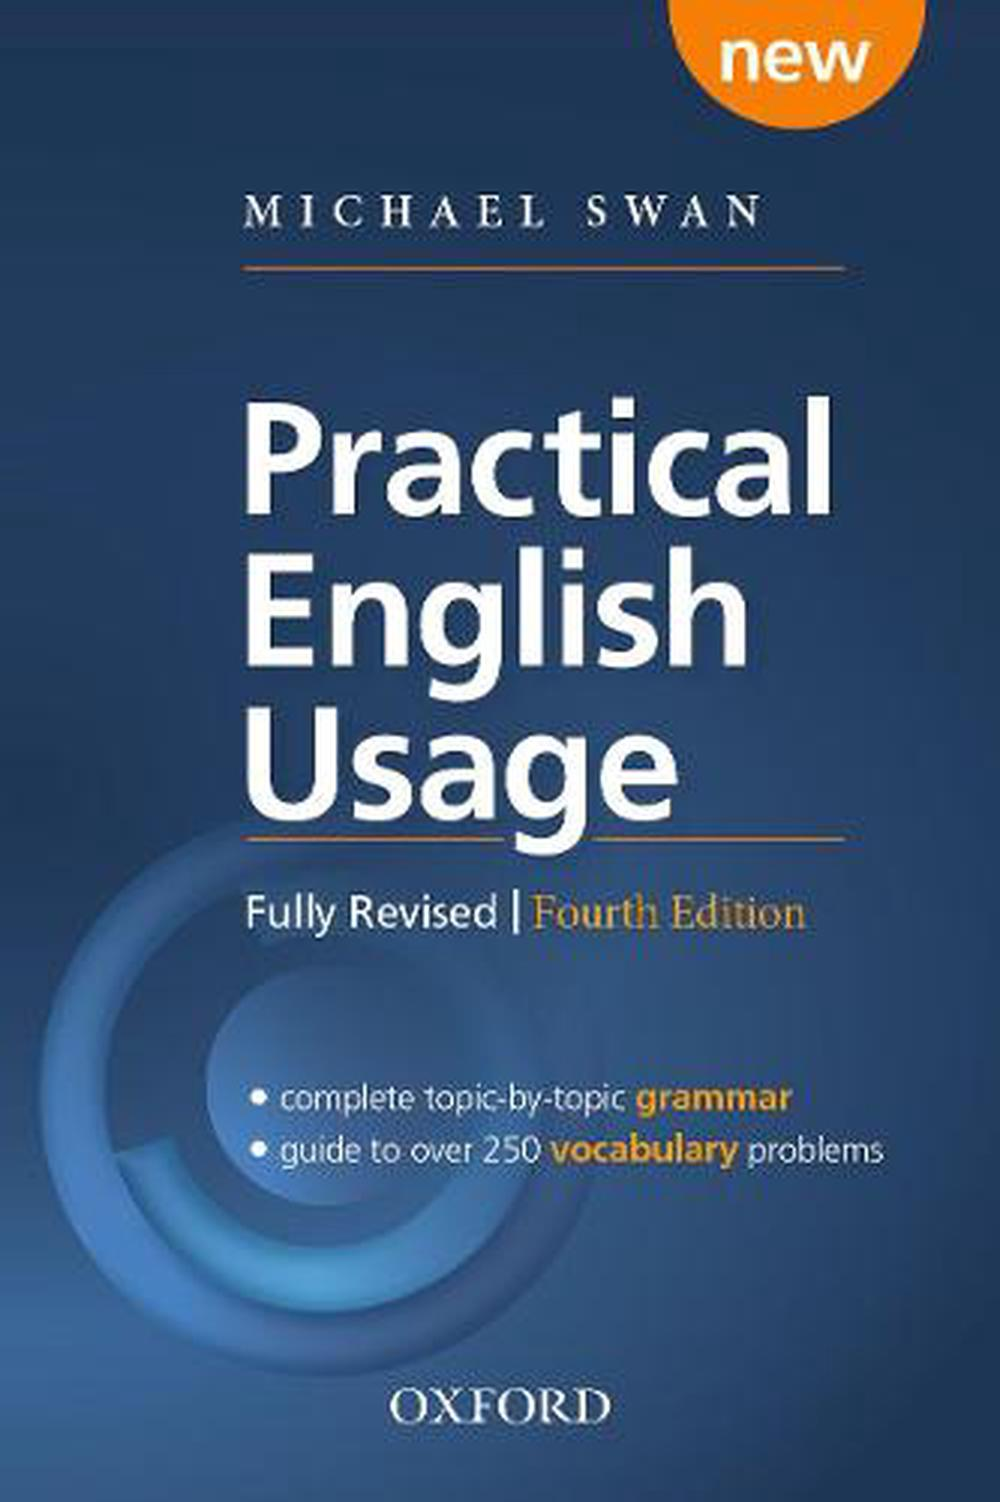 practical english usage 4th edition paperback by michael swan rh thenile com au Practical English Usage PDF Michael Swan English Grammar PDF